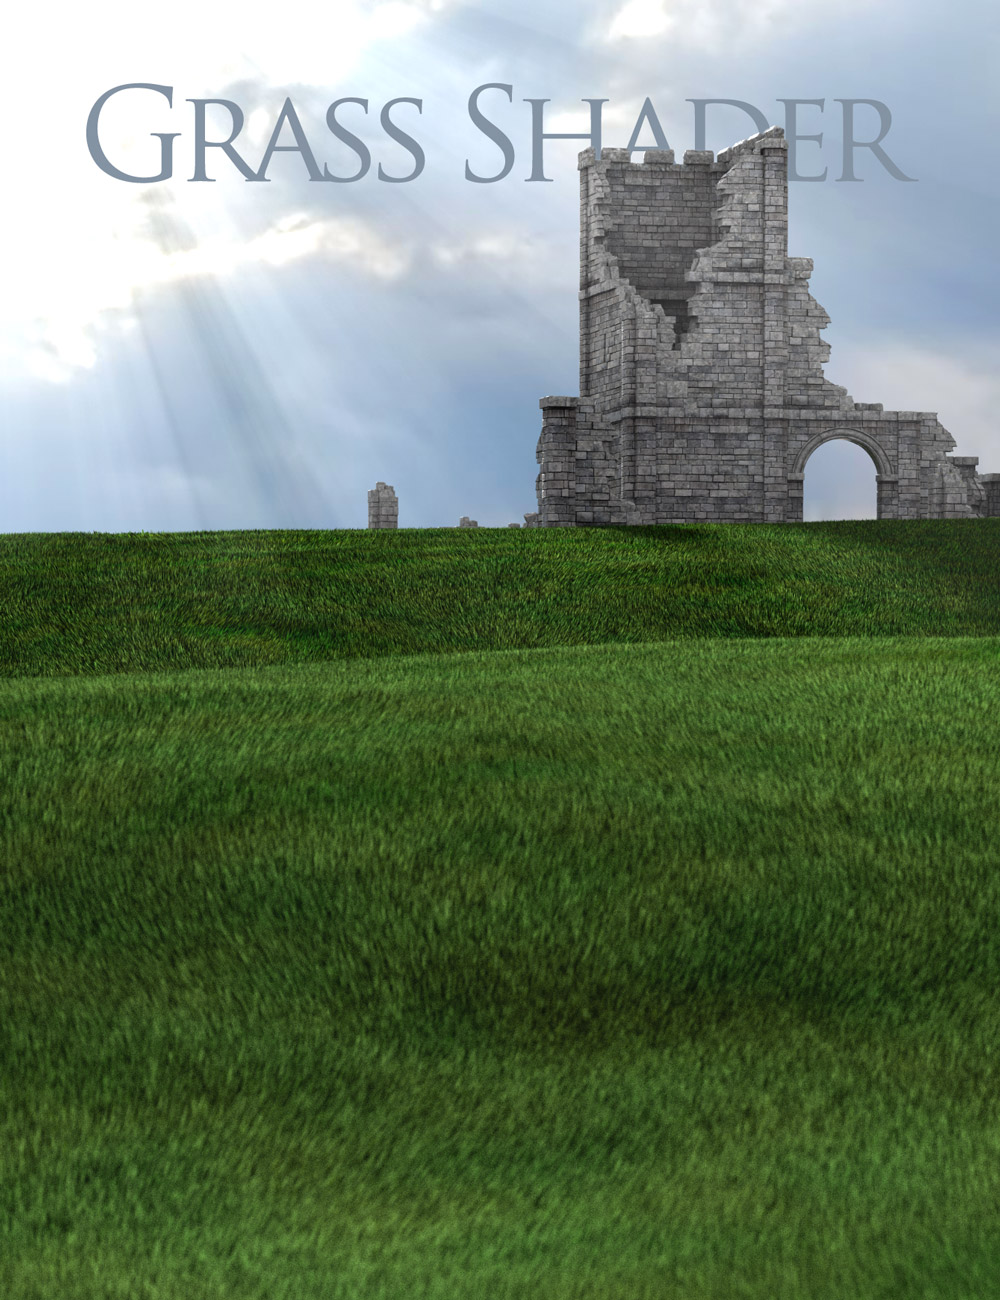 Grass Shader for DAZ Studio by: DimensionTheory, 3D Models by Daz 3D